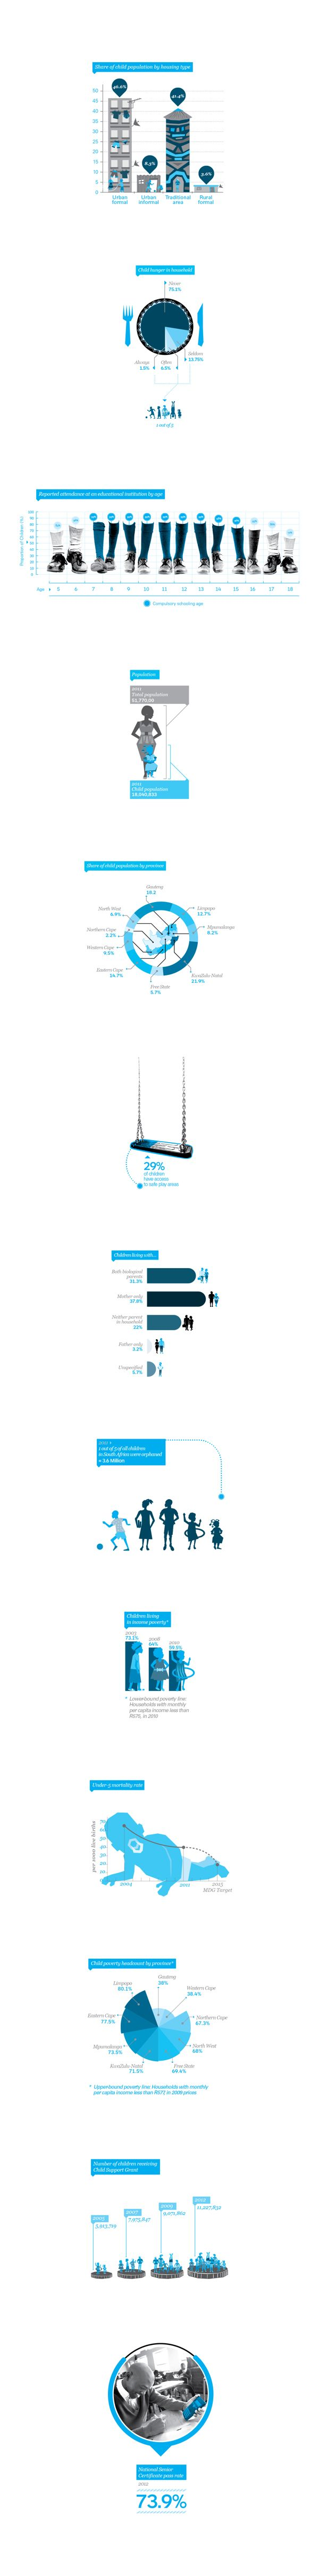 UNICEF Annual Report on Behance #Infographic #Unicef via @Lisa Phillips-Barton a Farme / Anne Boisen